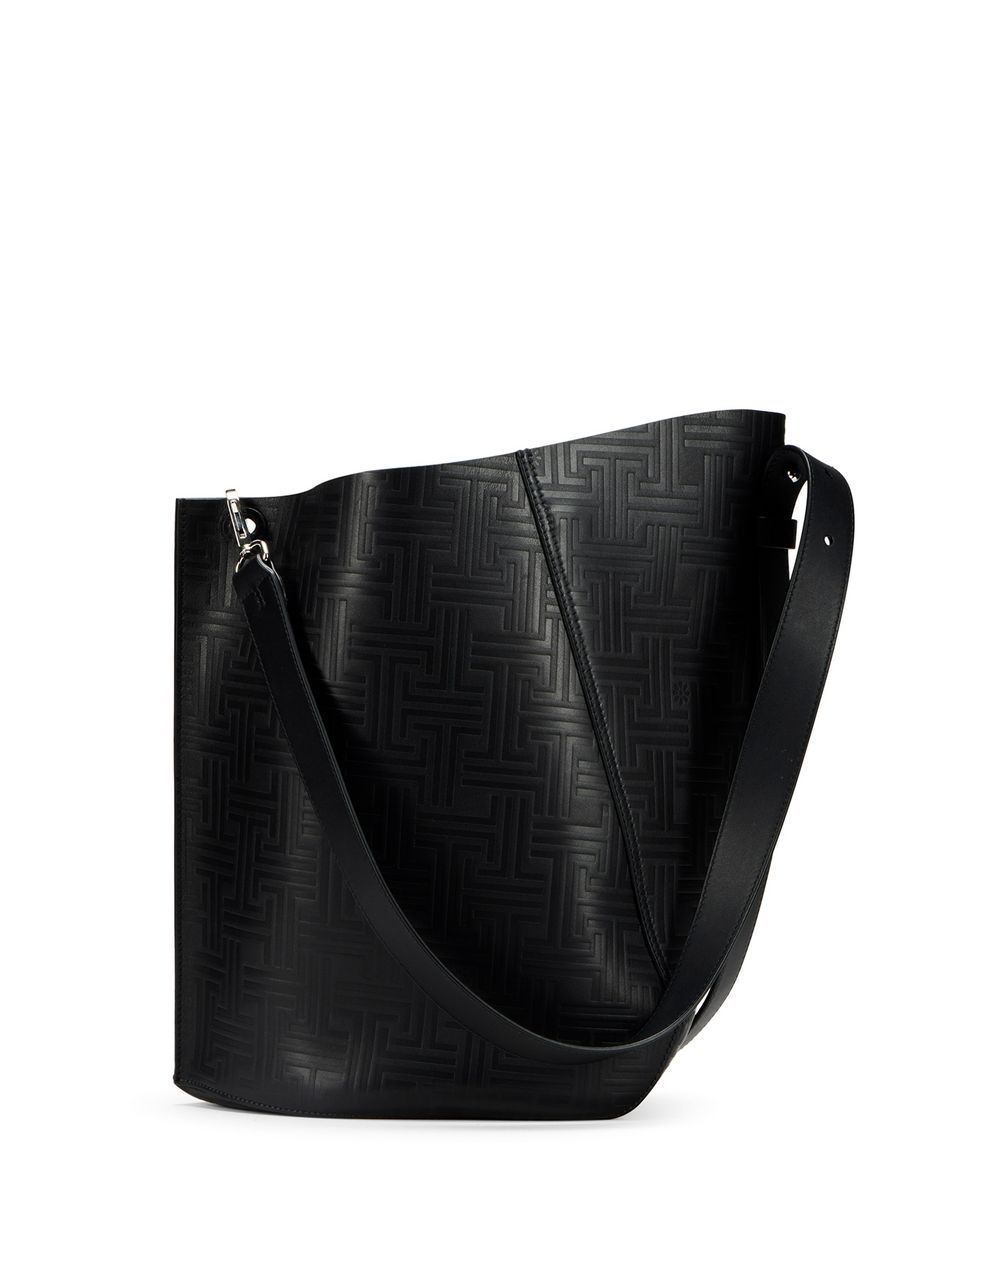 MEDIUM HOOK BAG WITH JL MOTIFS - Lanvin